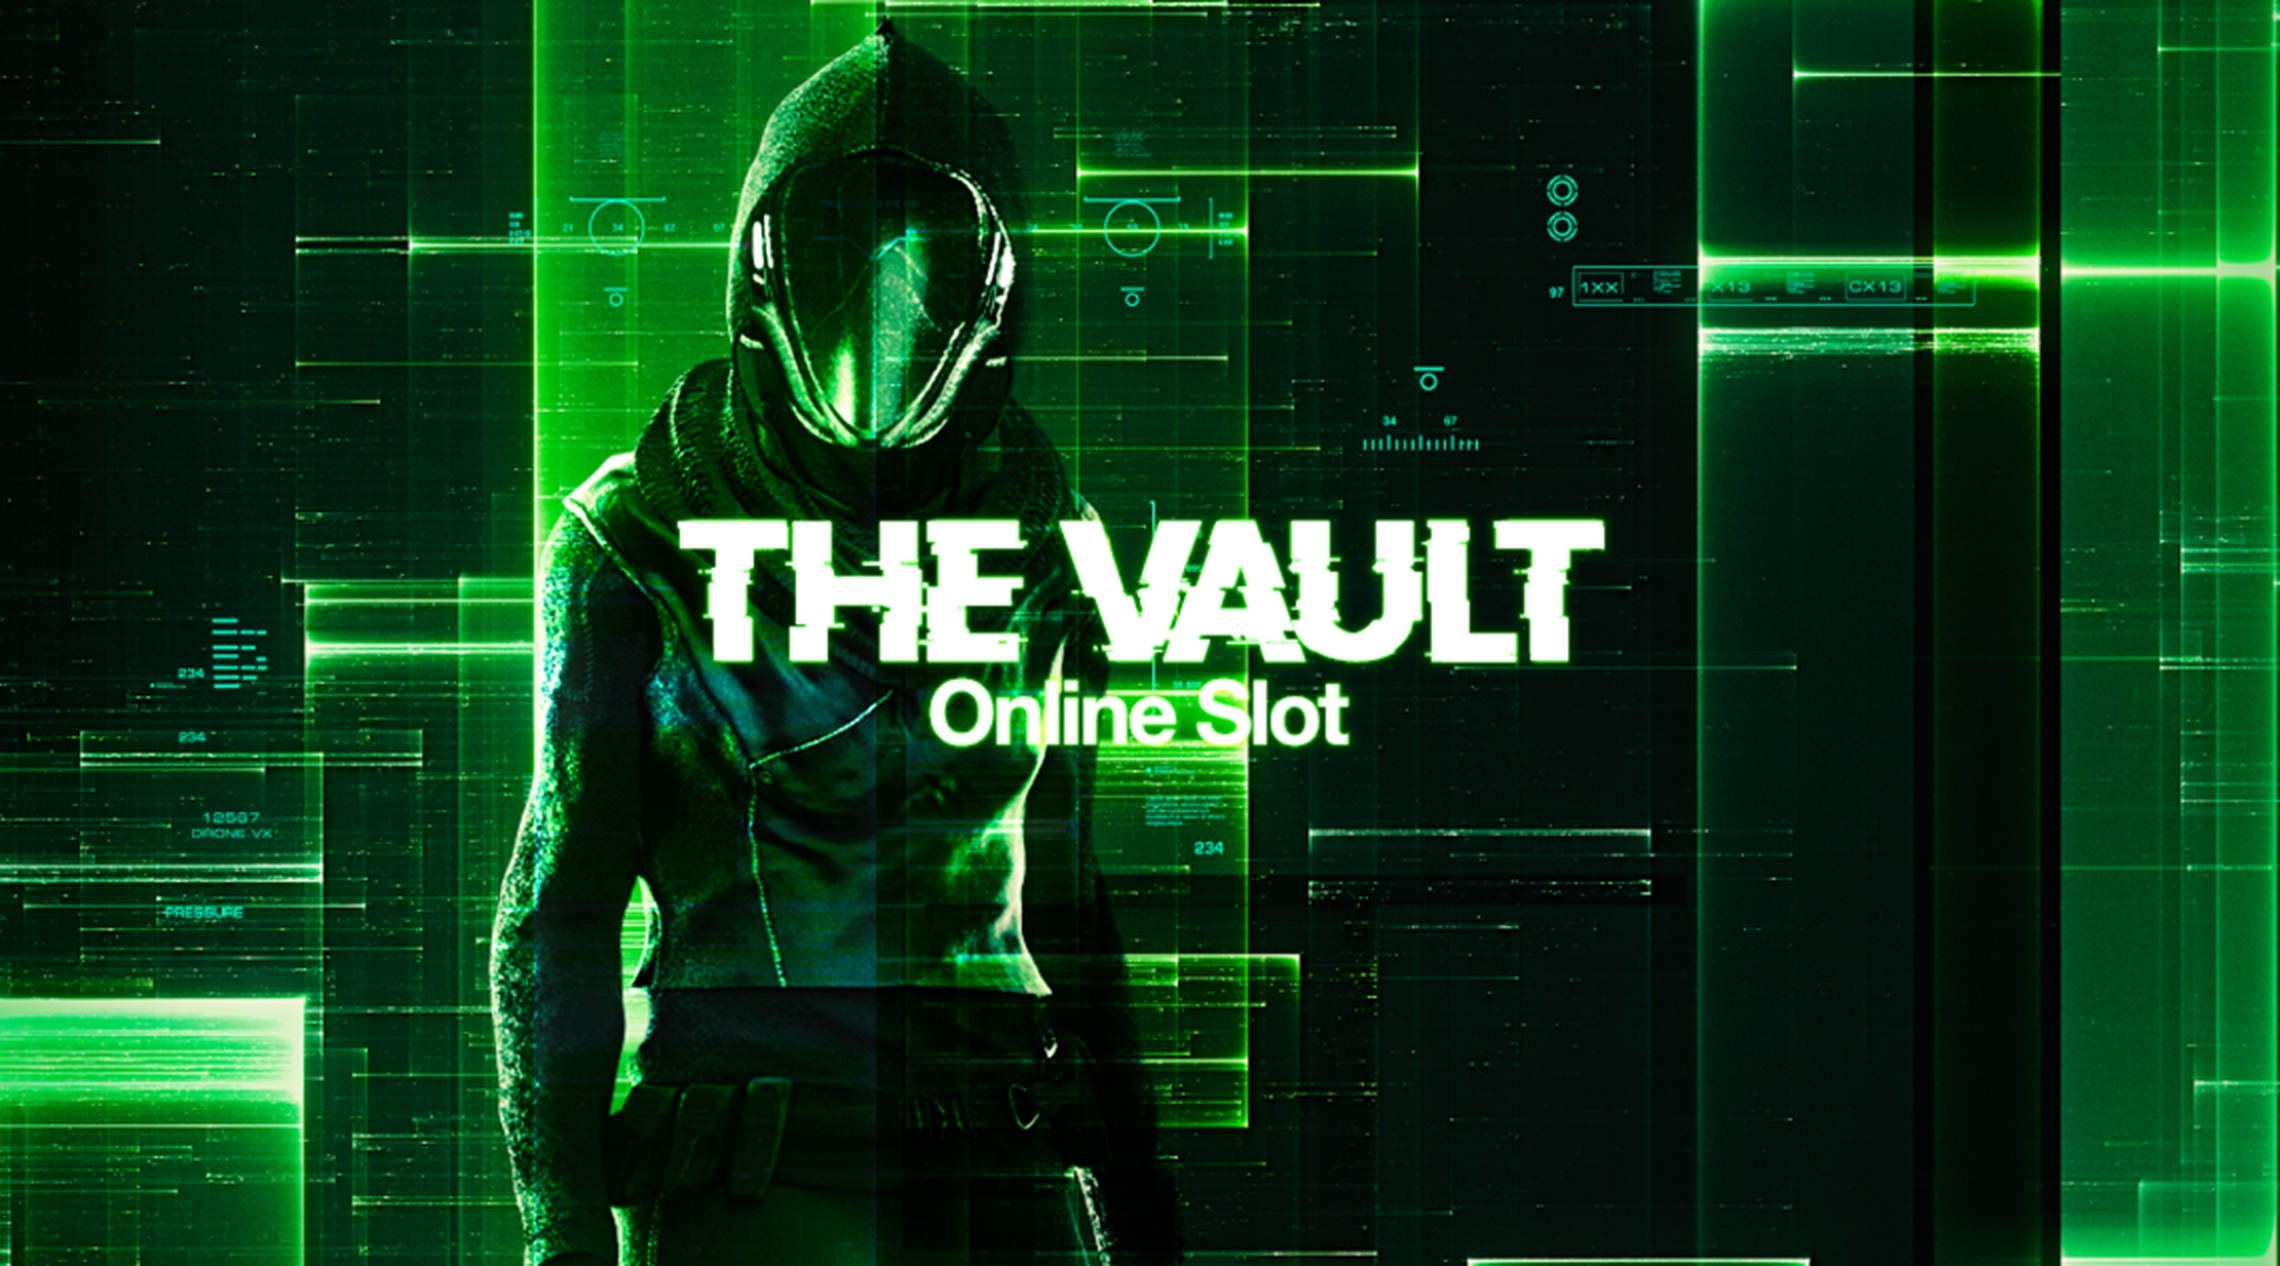 The The Vault Online Slot Demo Game by Snowborn Games